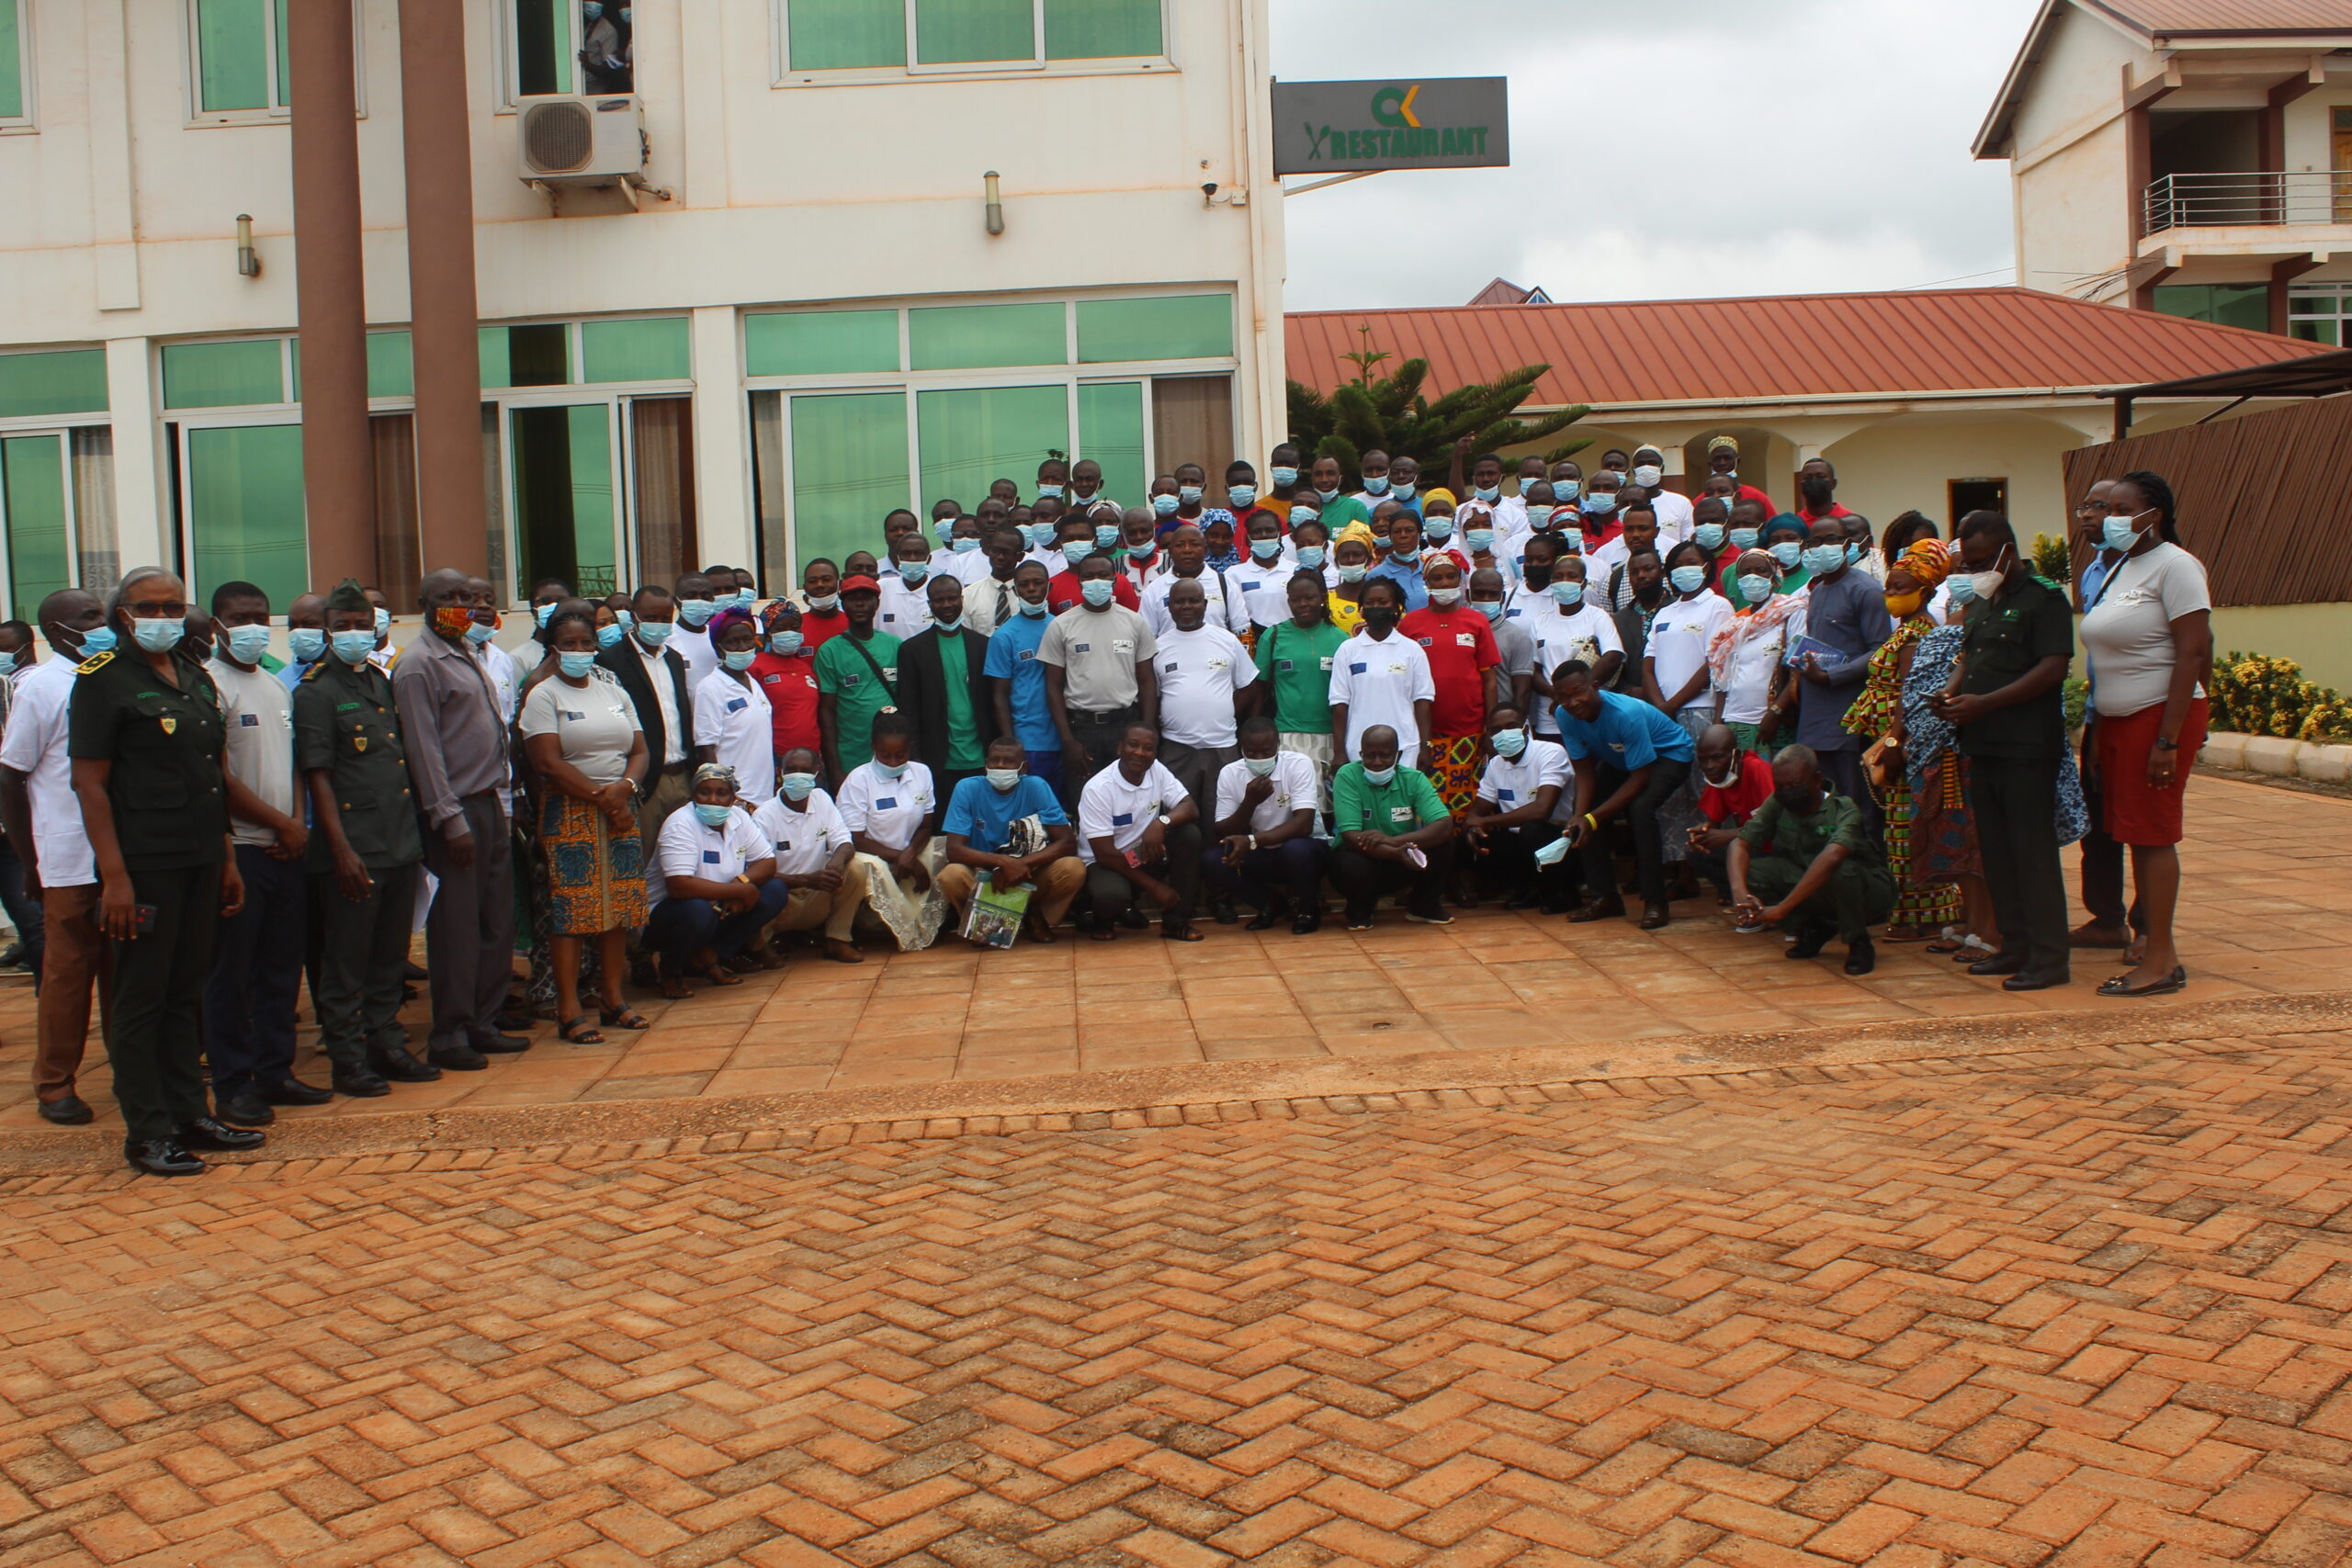 LEAN Project launched to improve the livelihoods of farmers in the Transition Landscape